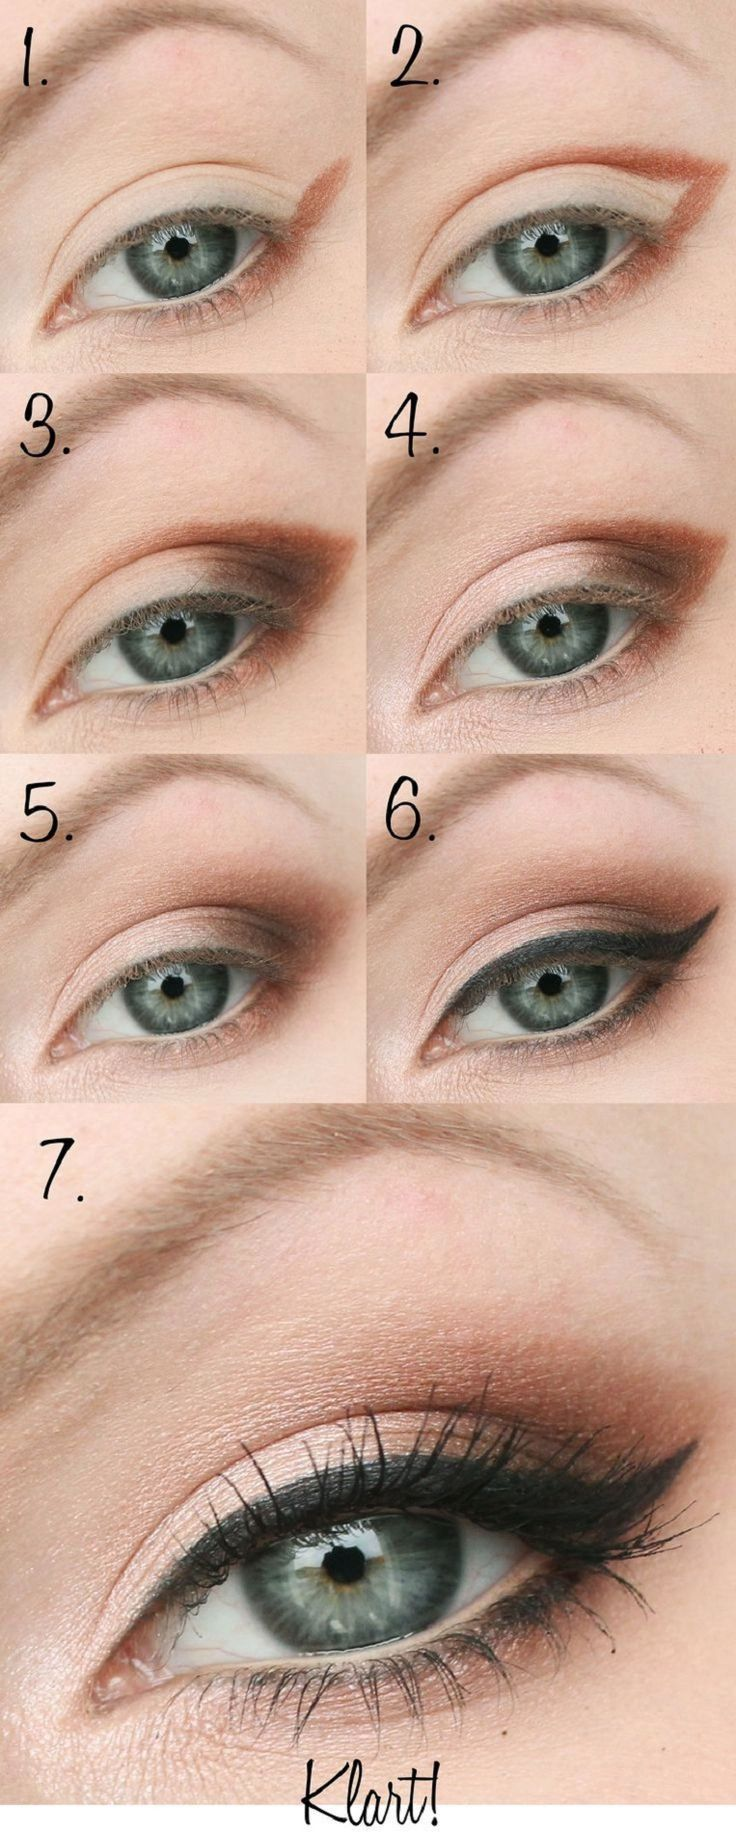 Steps for making the perfect eye makeup shades. | Pretty Woman Salon & Boutique | (618) 998-9139 |